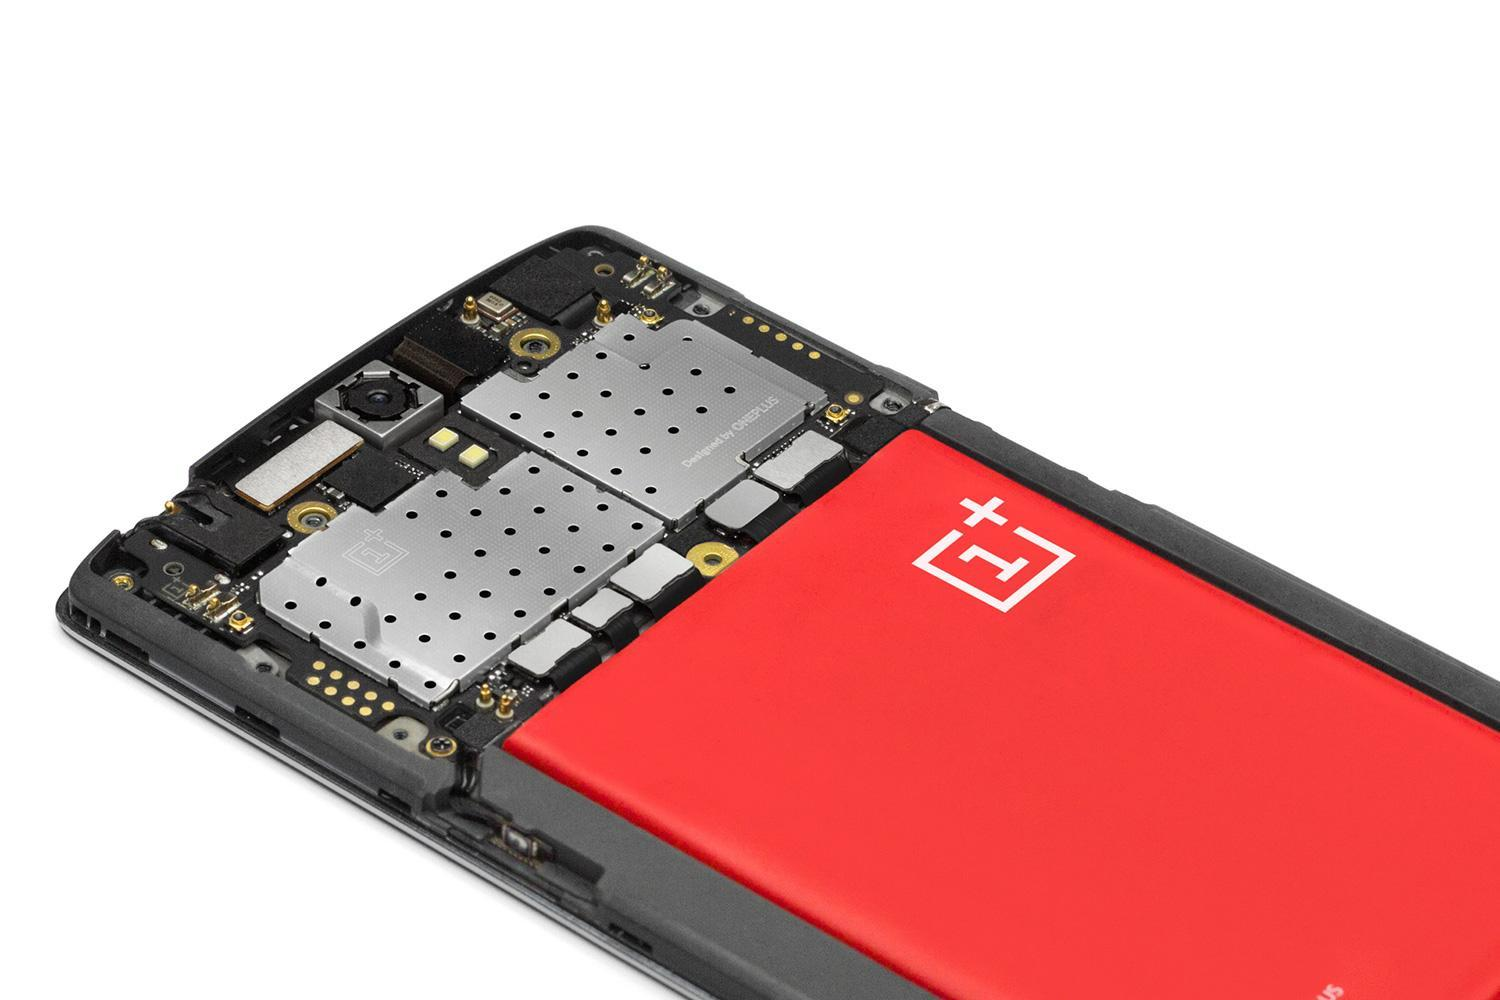 Le OnePlus One supporte le RAW (DNG) : les photos de comparaison avec le JPEG